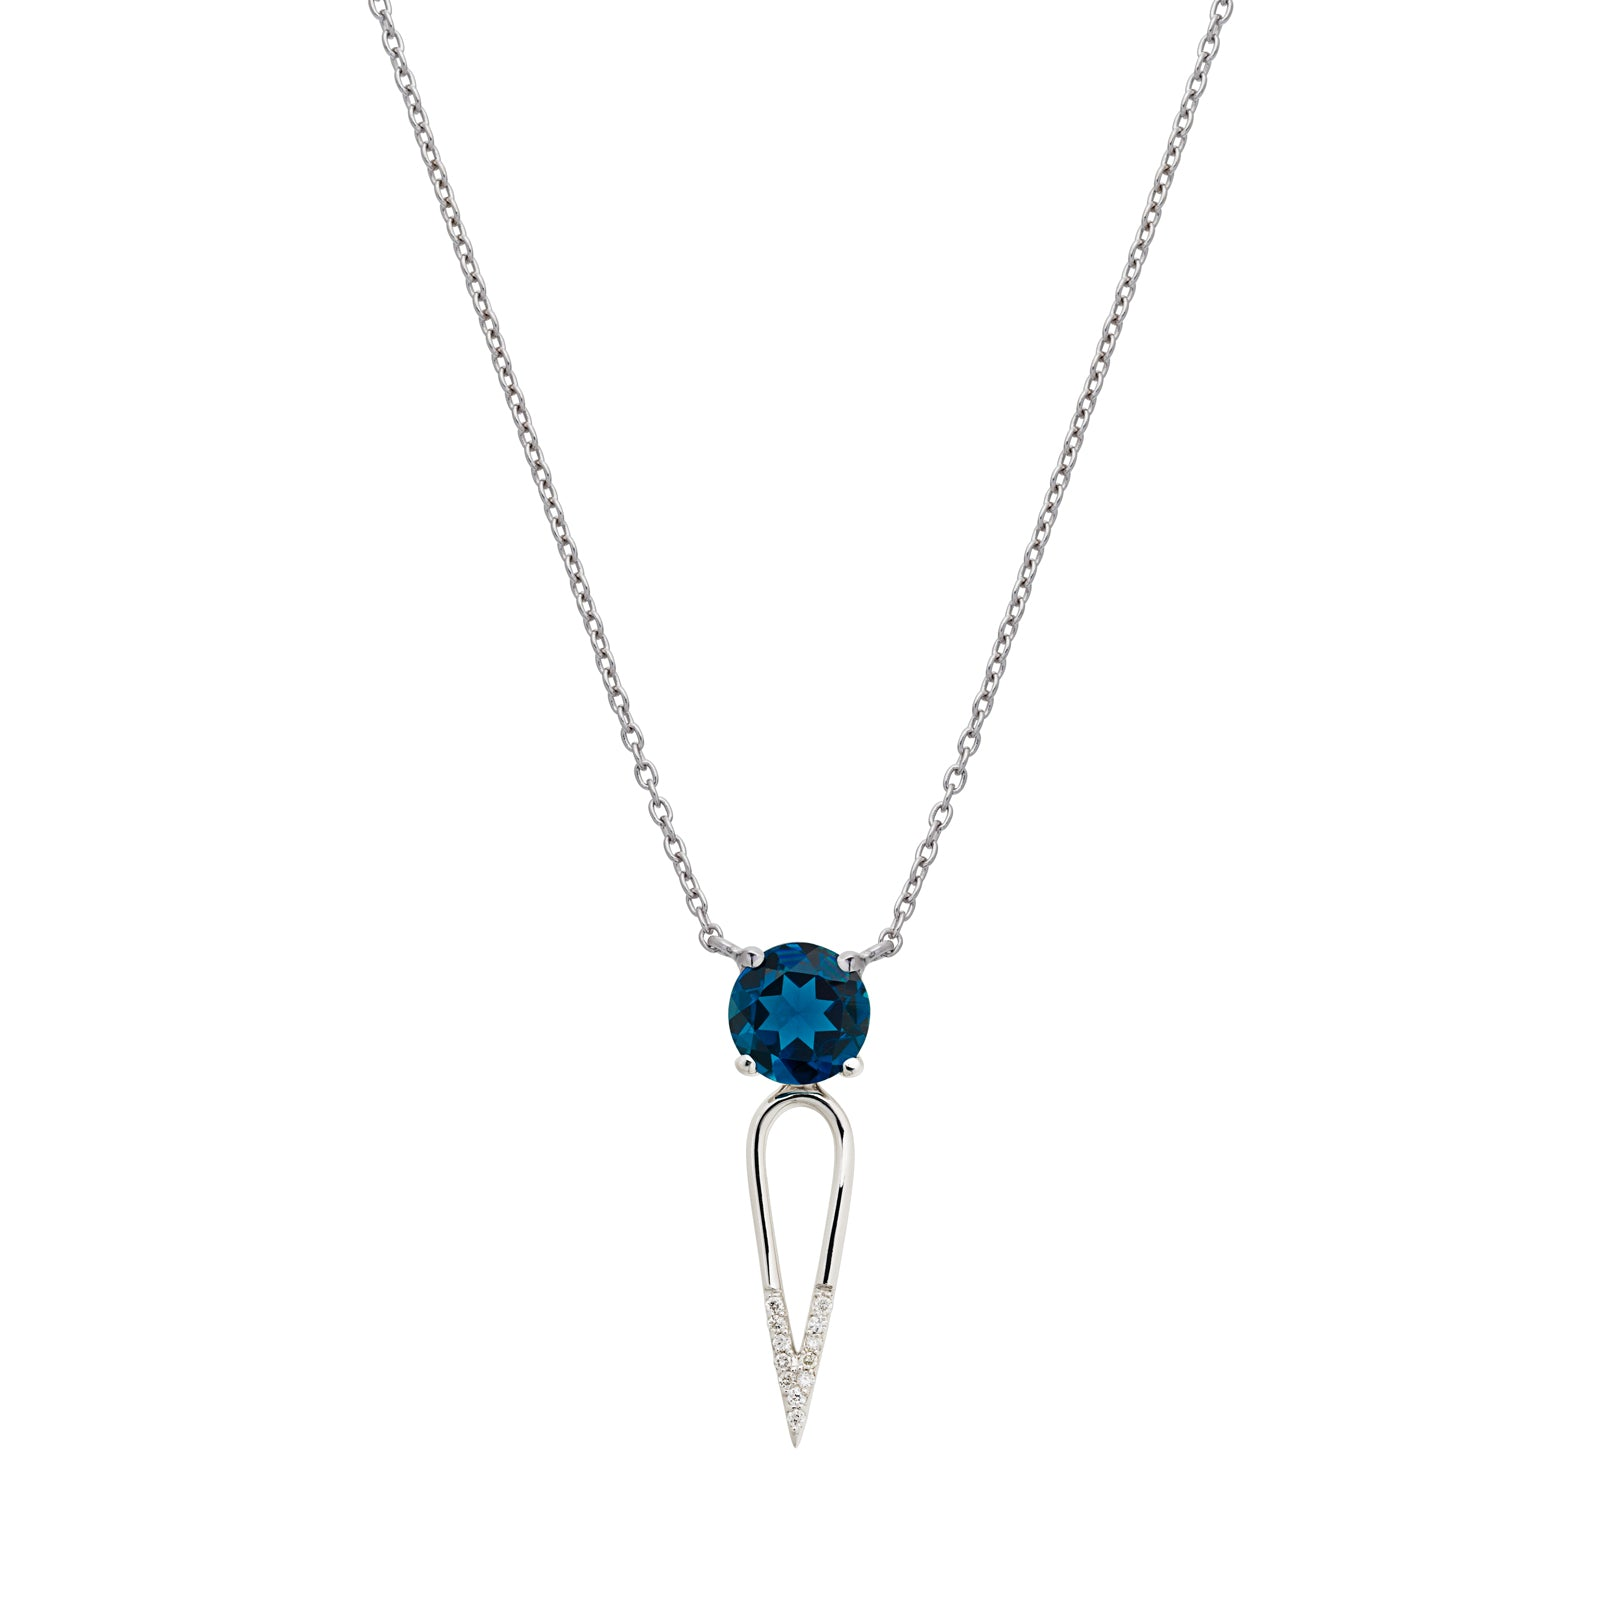 "London Blue Topaz Gem Stone, diamond dipped dagger, sterling silver necklace, edgy yet elegant 18"" chain, made in NYC"